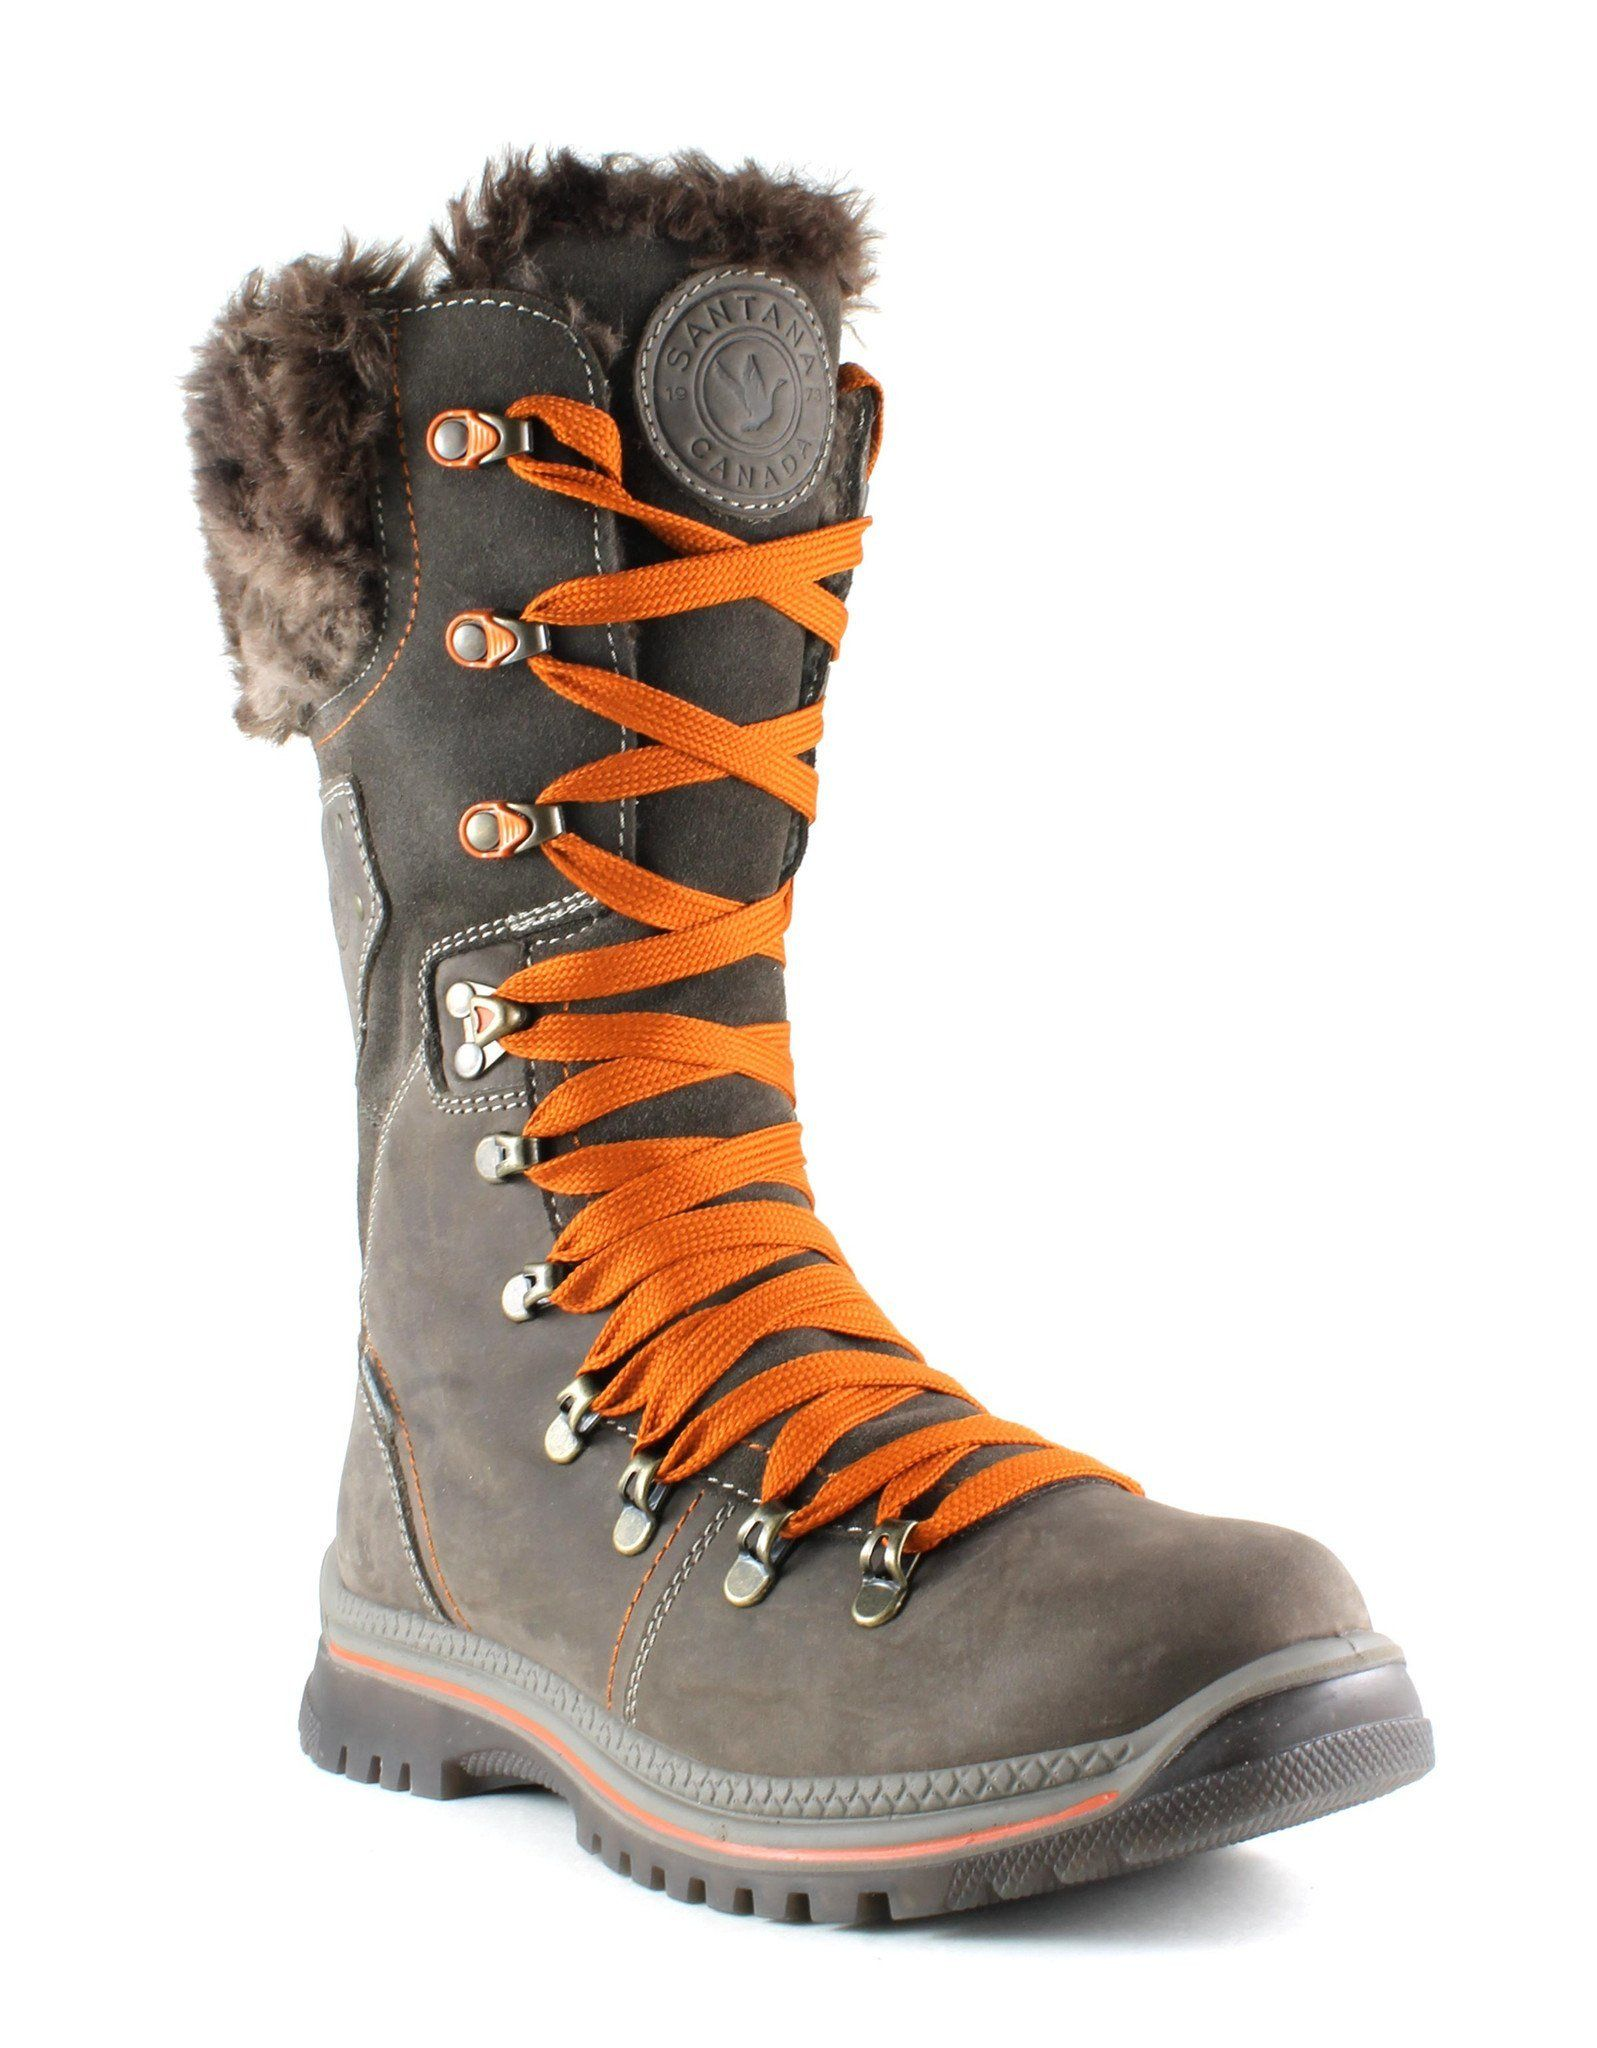 072da8dbc Santana Canada Women's Melita 3 Snow Boot in Brown - Last Pair - FINAL SALE